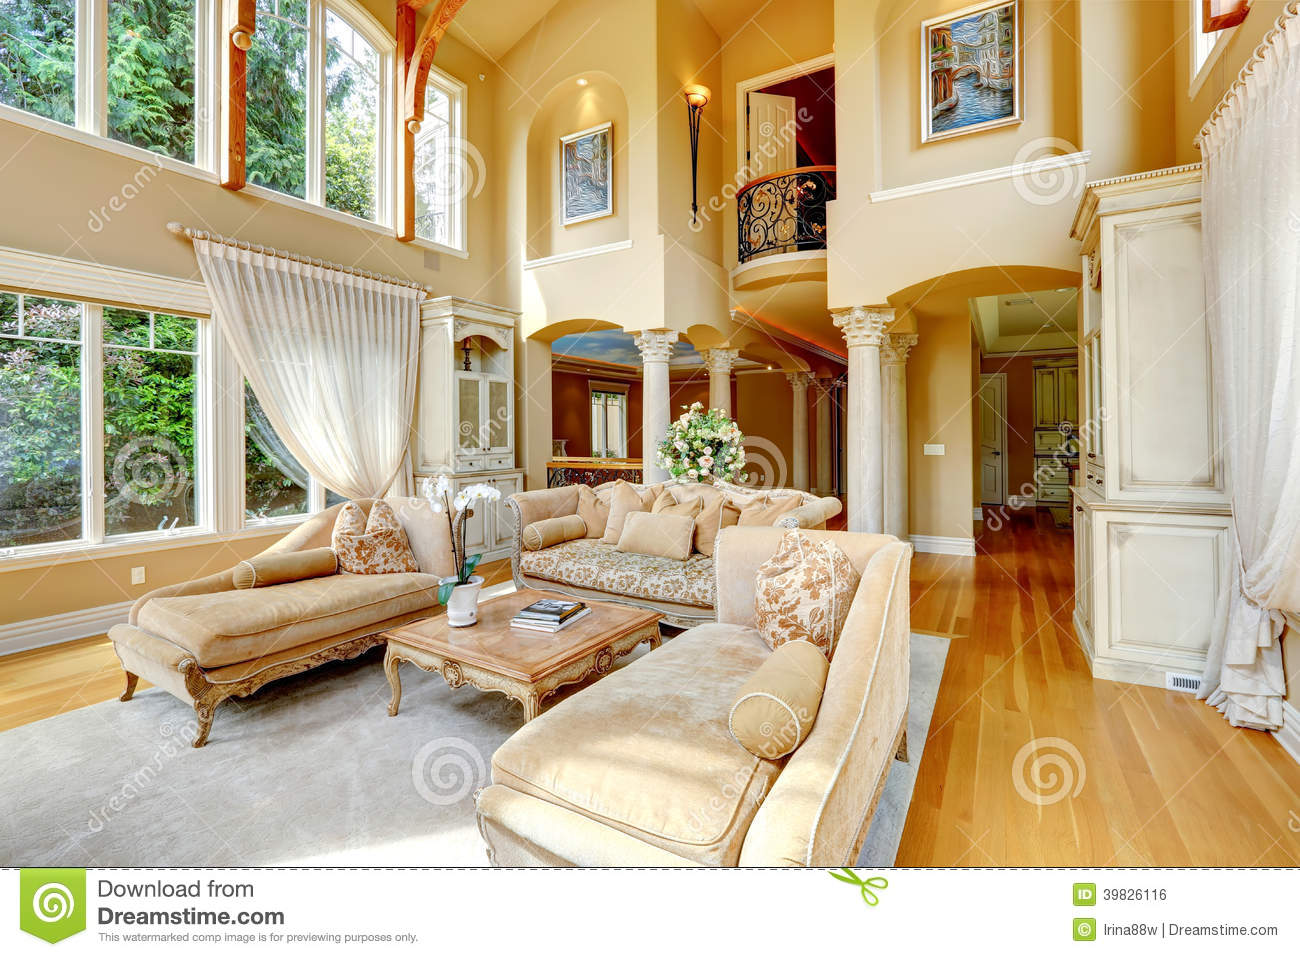 Luxury house interior living room stock photo image - Imagen de casas ...